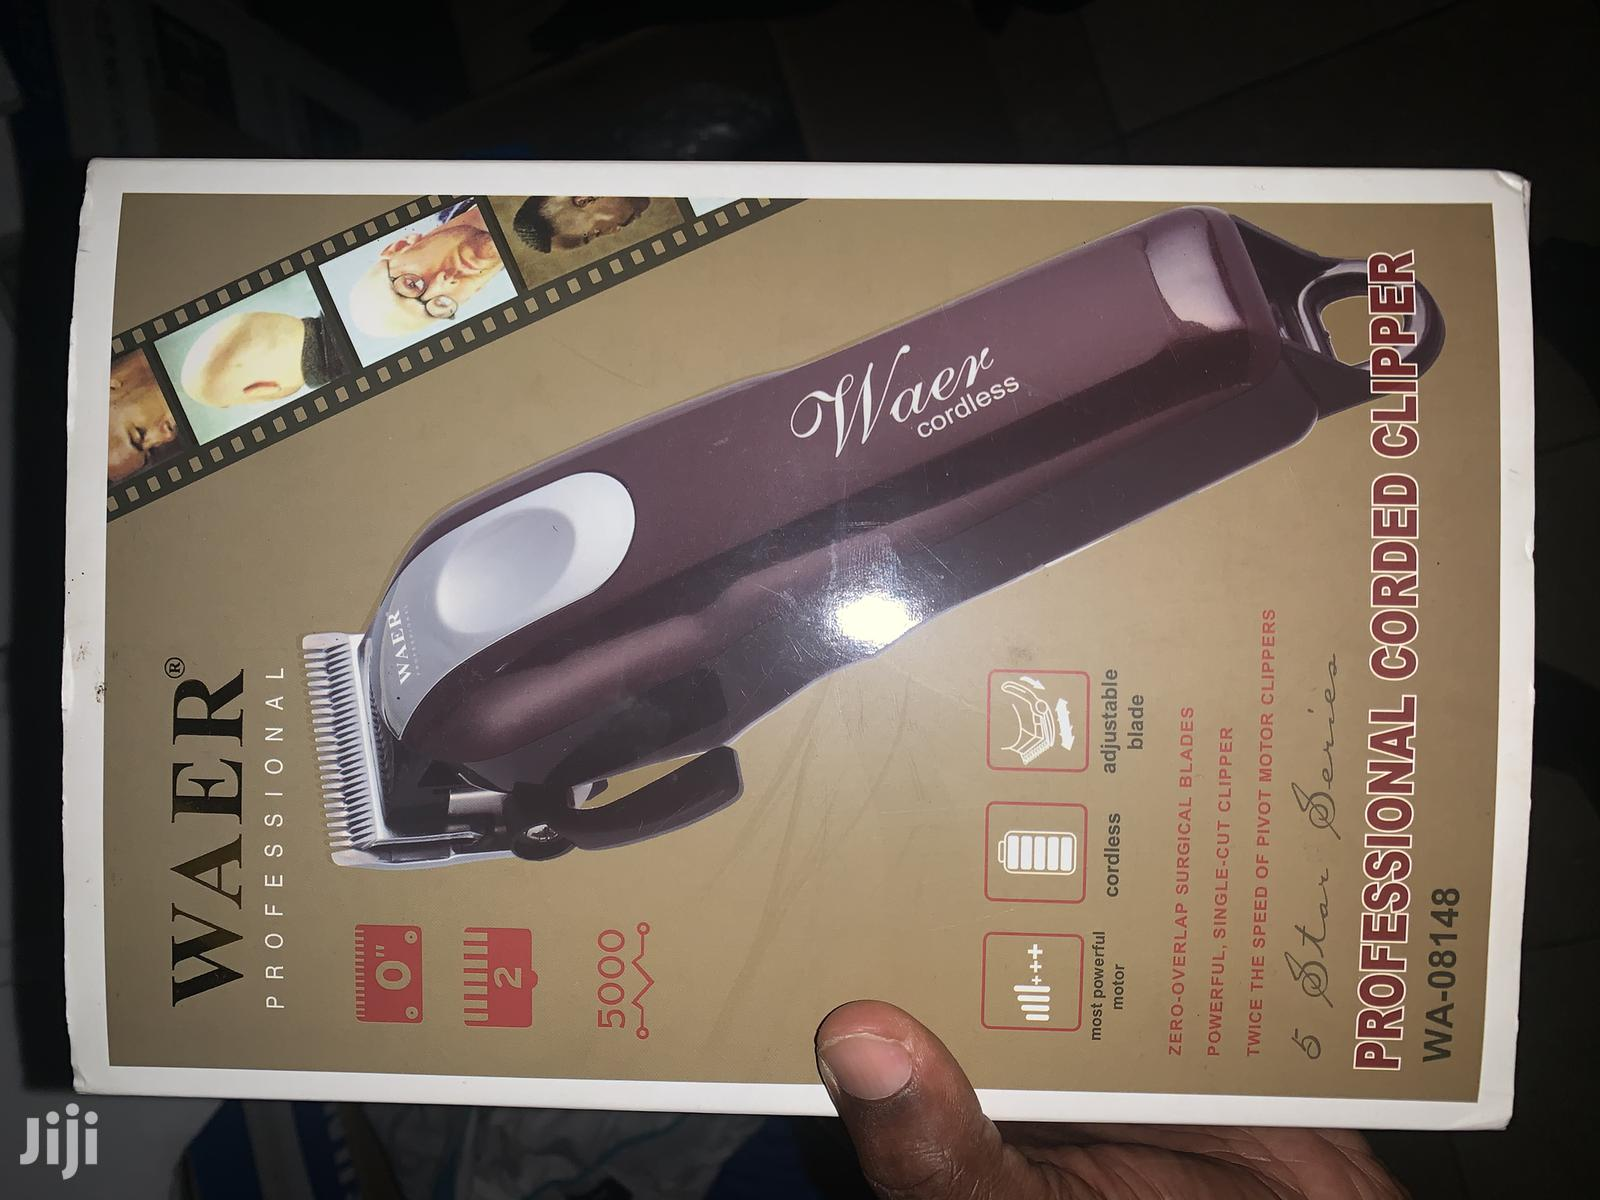 Waer Professional Cordless Clipper | Tools & Accessories for sale in Asylum Down, Greater Accra, Ghana